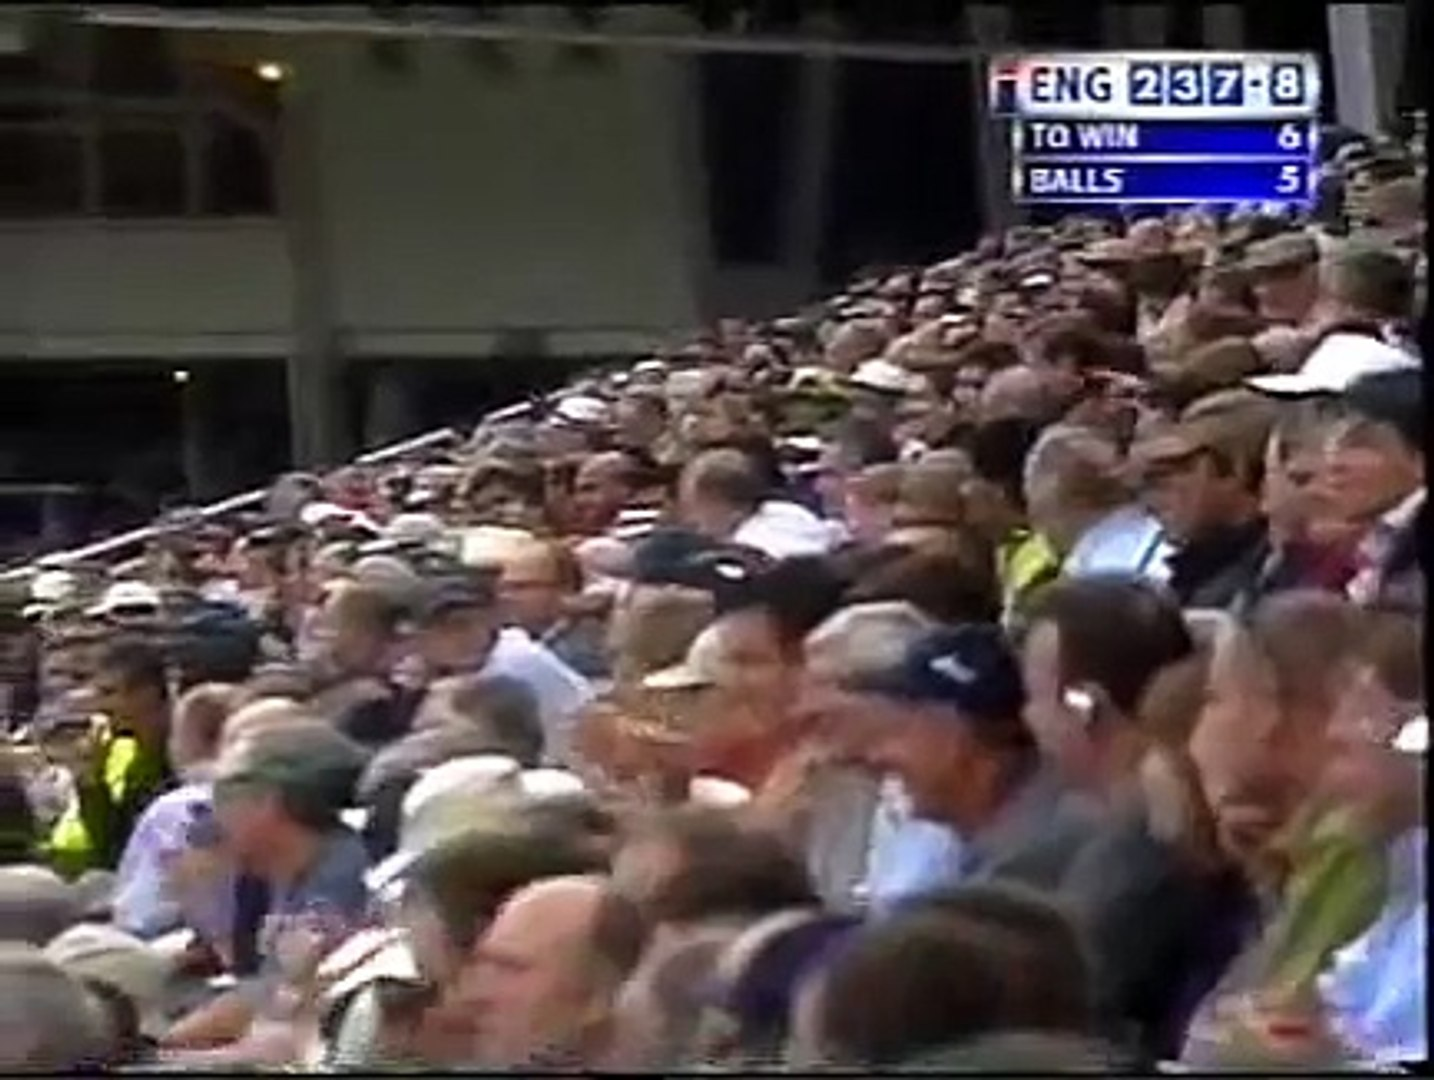 Cricket Lovers: Amazing Catch by Shahid Afridi.... You will watch it twice for sure.... Two fielders